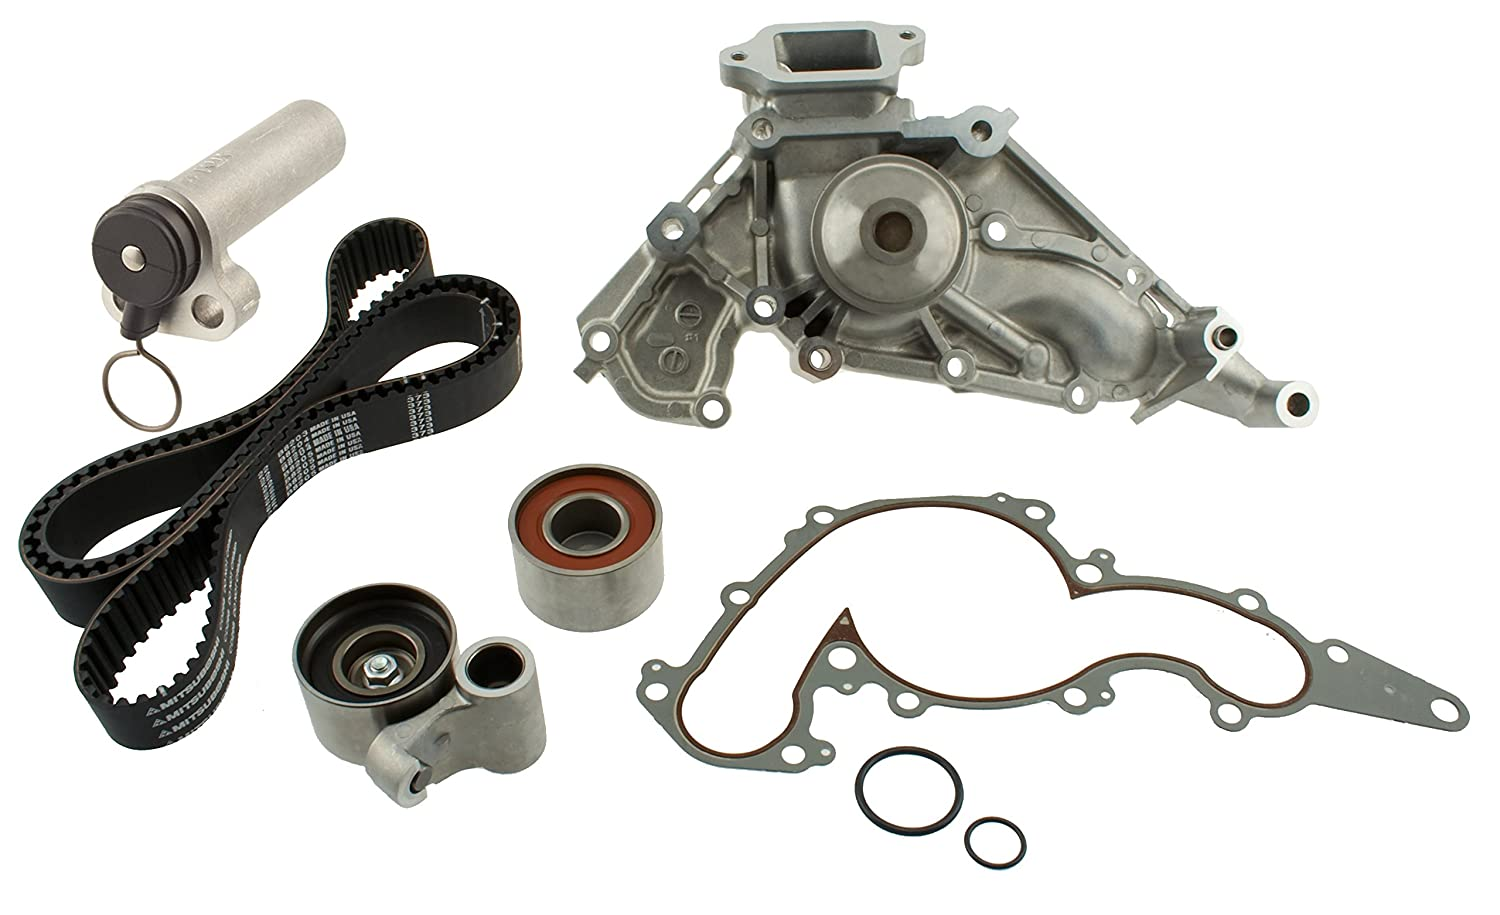 Aisin Tkt 021 Engine Timing Belt Kit With Water Pump Diagram Automotive